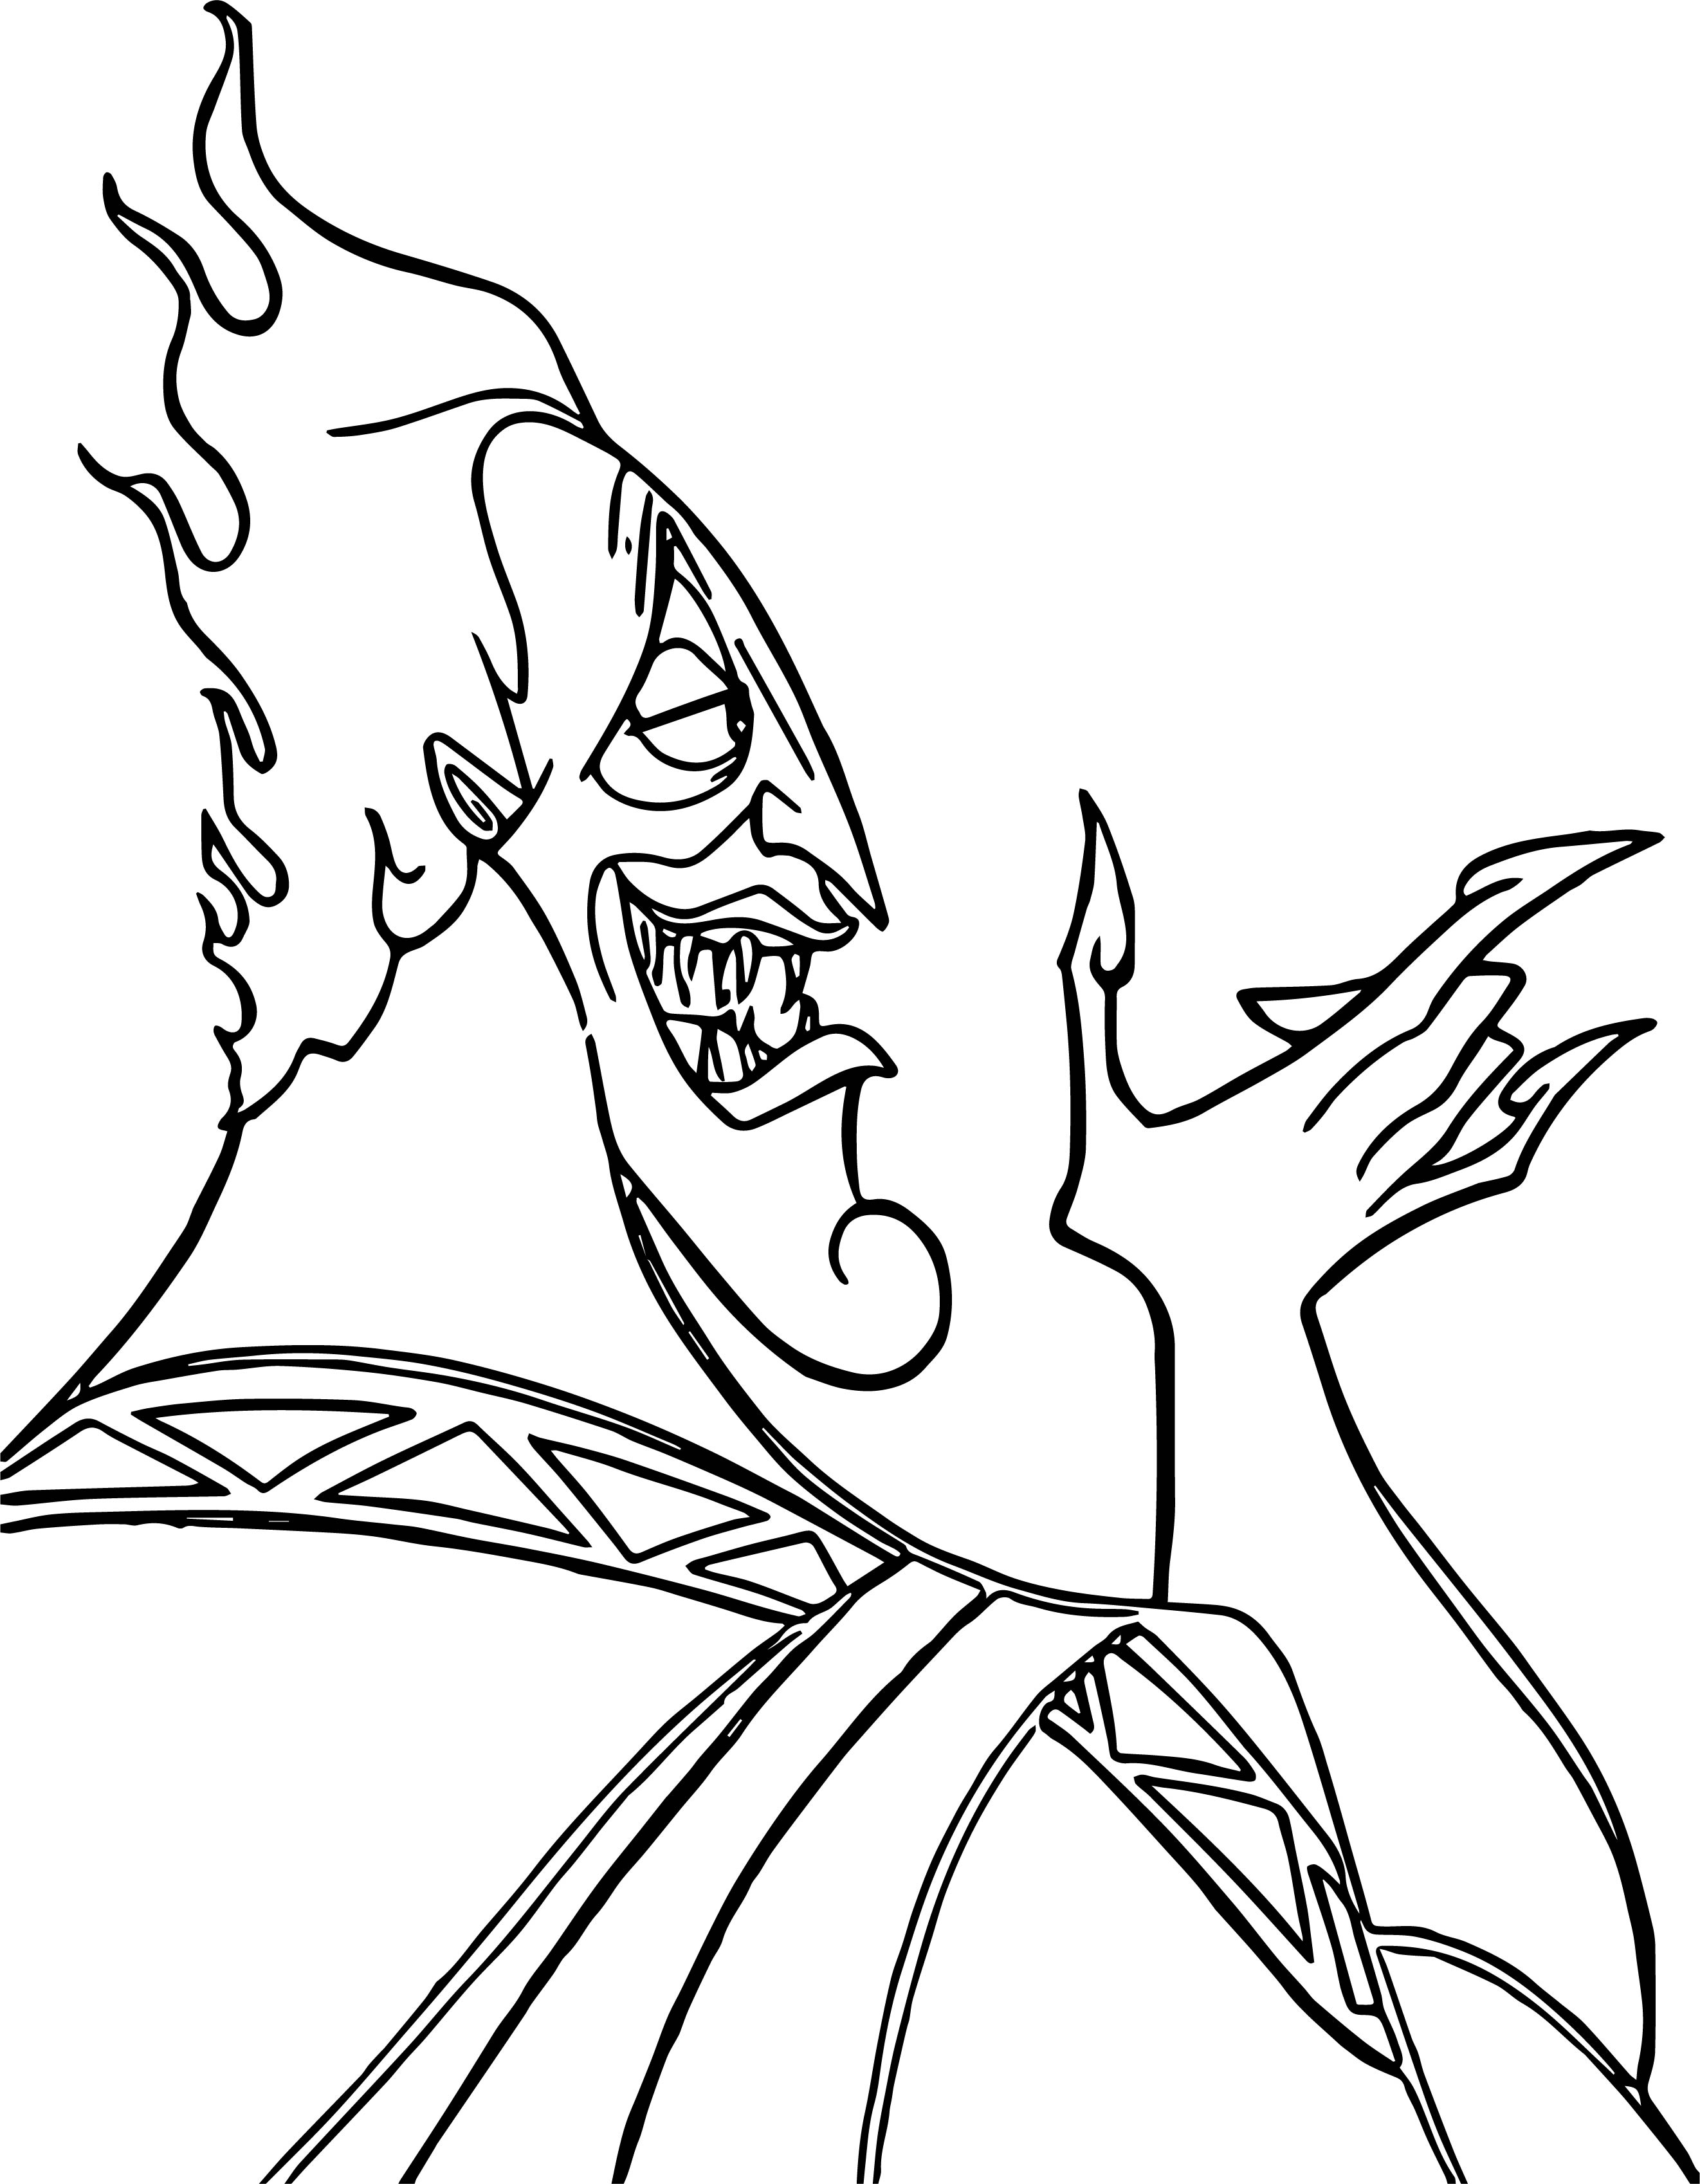 Thuh Coloring Pages